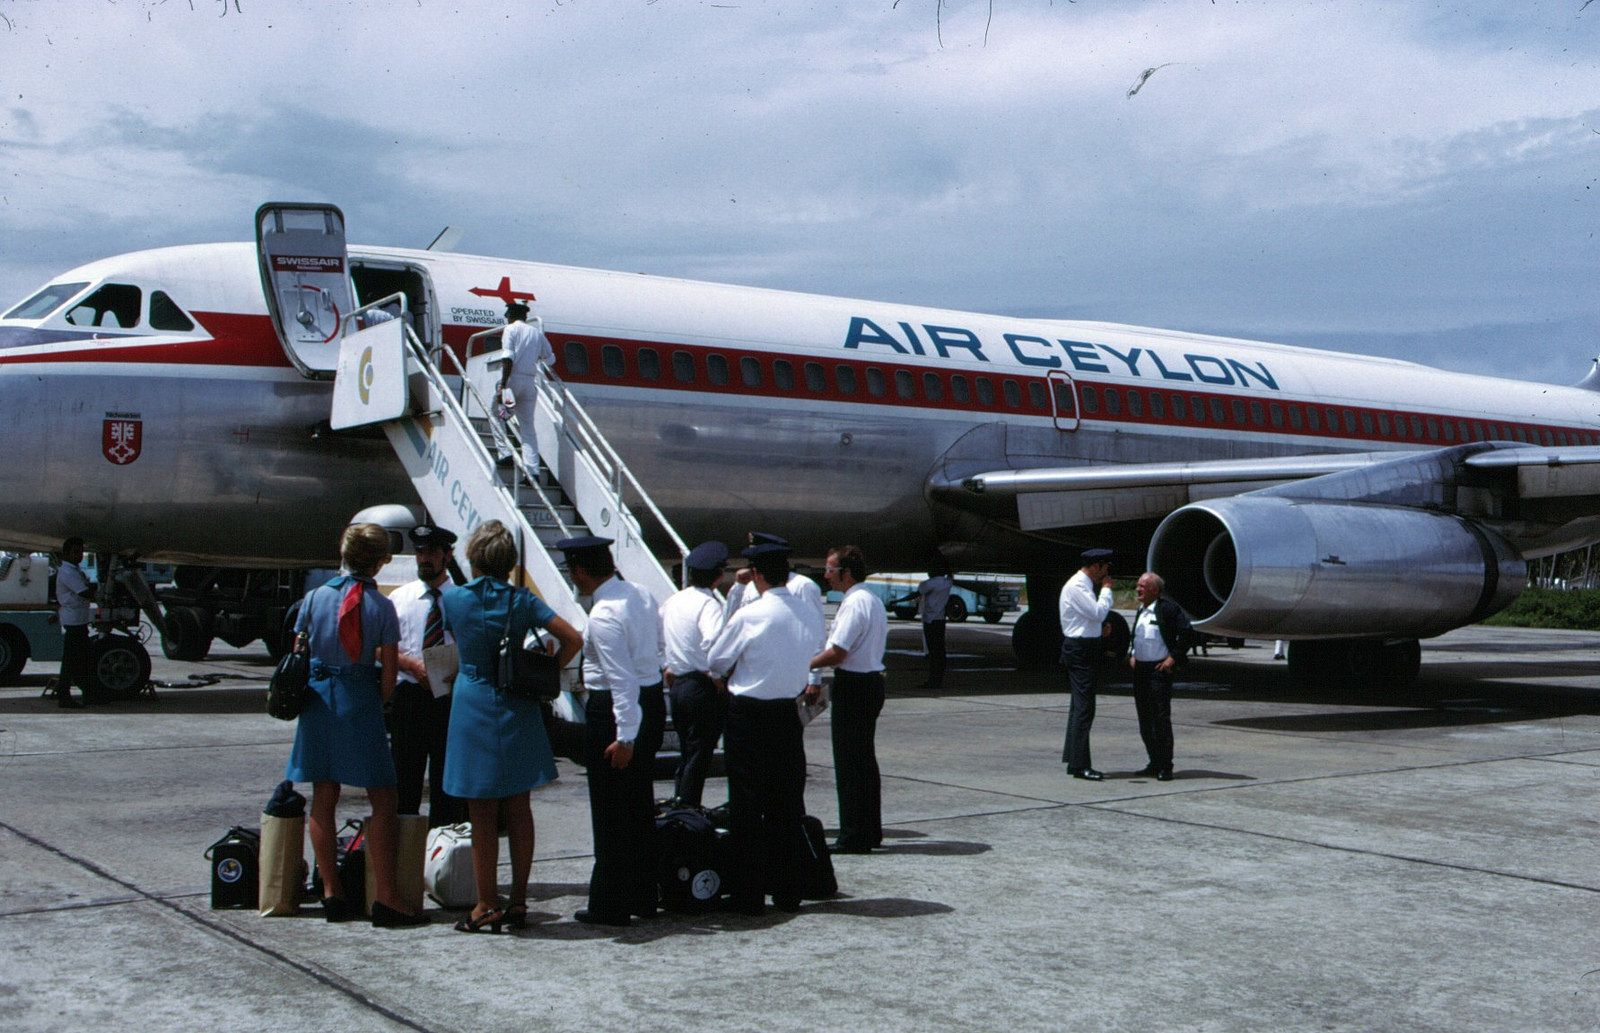 Convair CV-990   Flickr - Photo Sharing!  Air Ceylon titles on a Swissair 990. This looks like a wet lease, with crew and all (foreground).